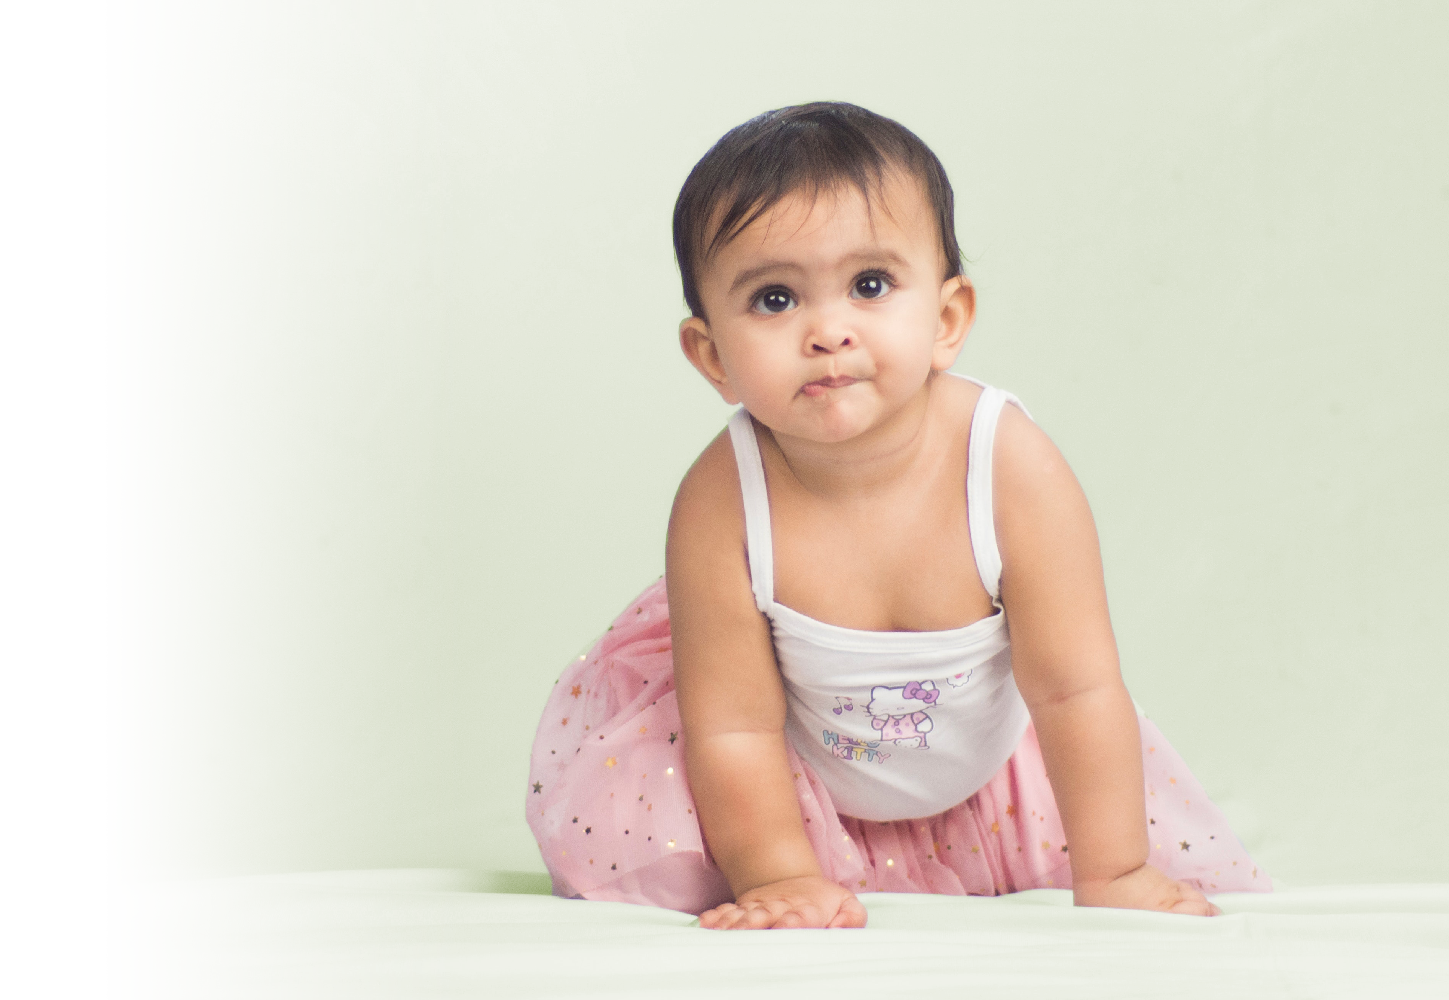 How to use saline nasal spray for babies